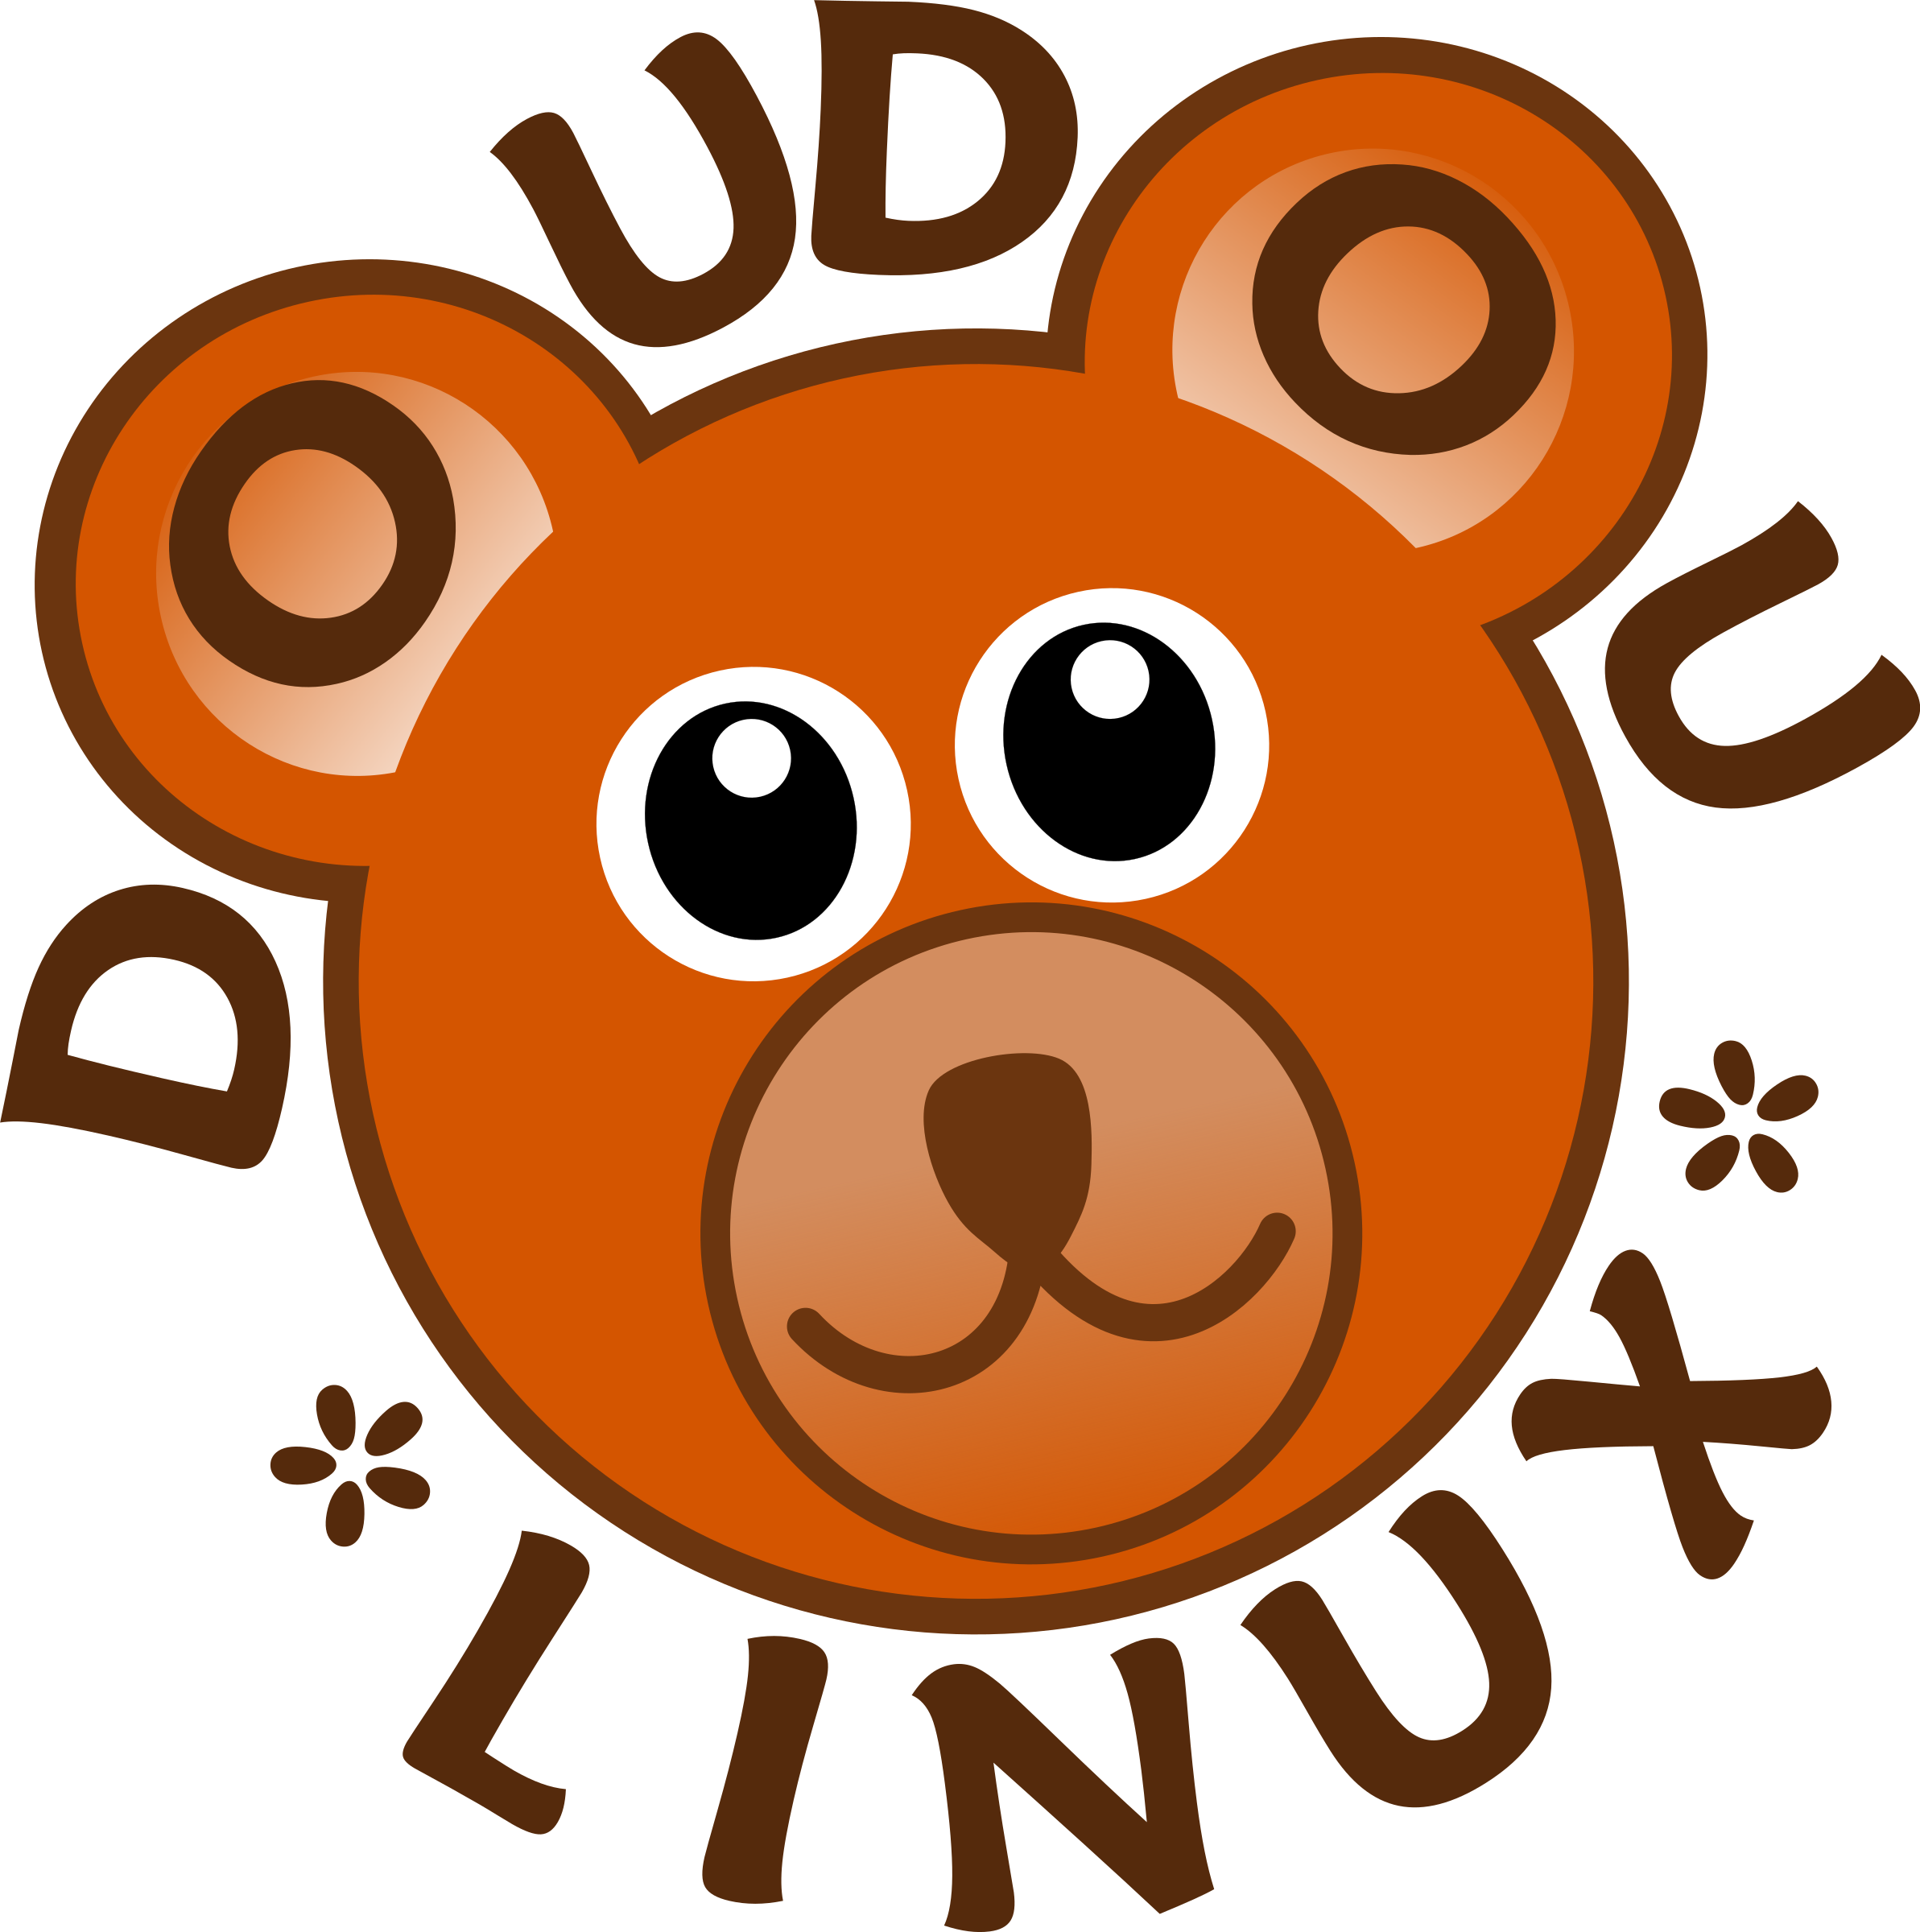 DoudouLinux Logo - Operating System fun and accessible for kids from 2 to 12 years old by palomaironique